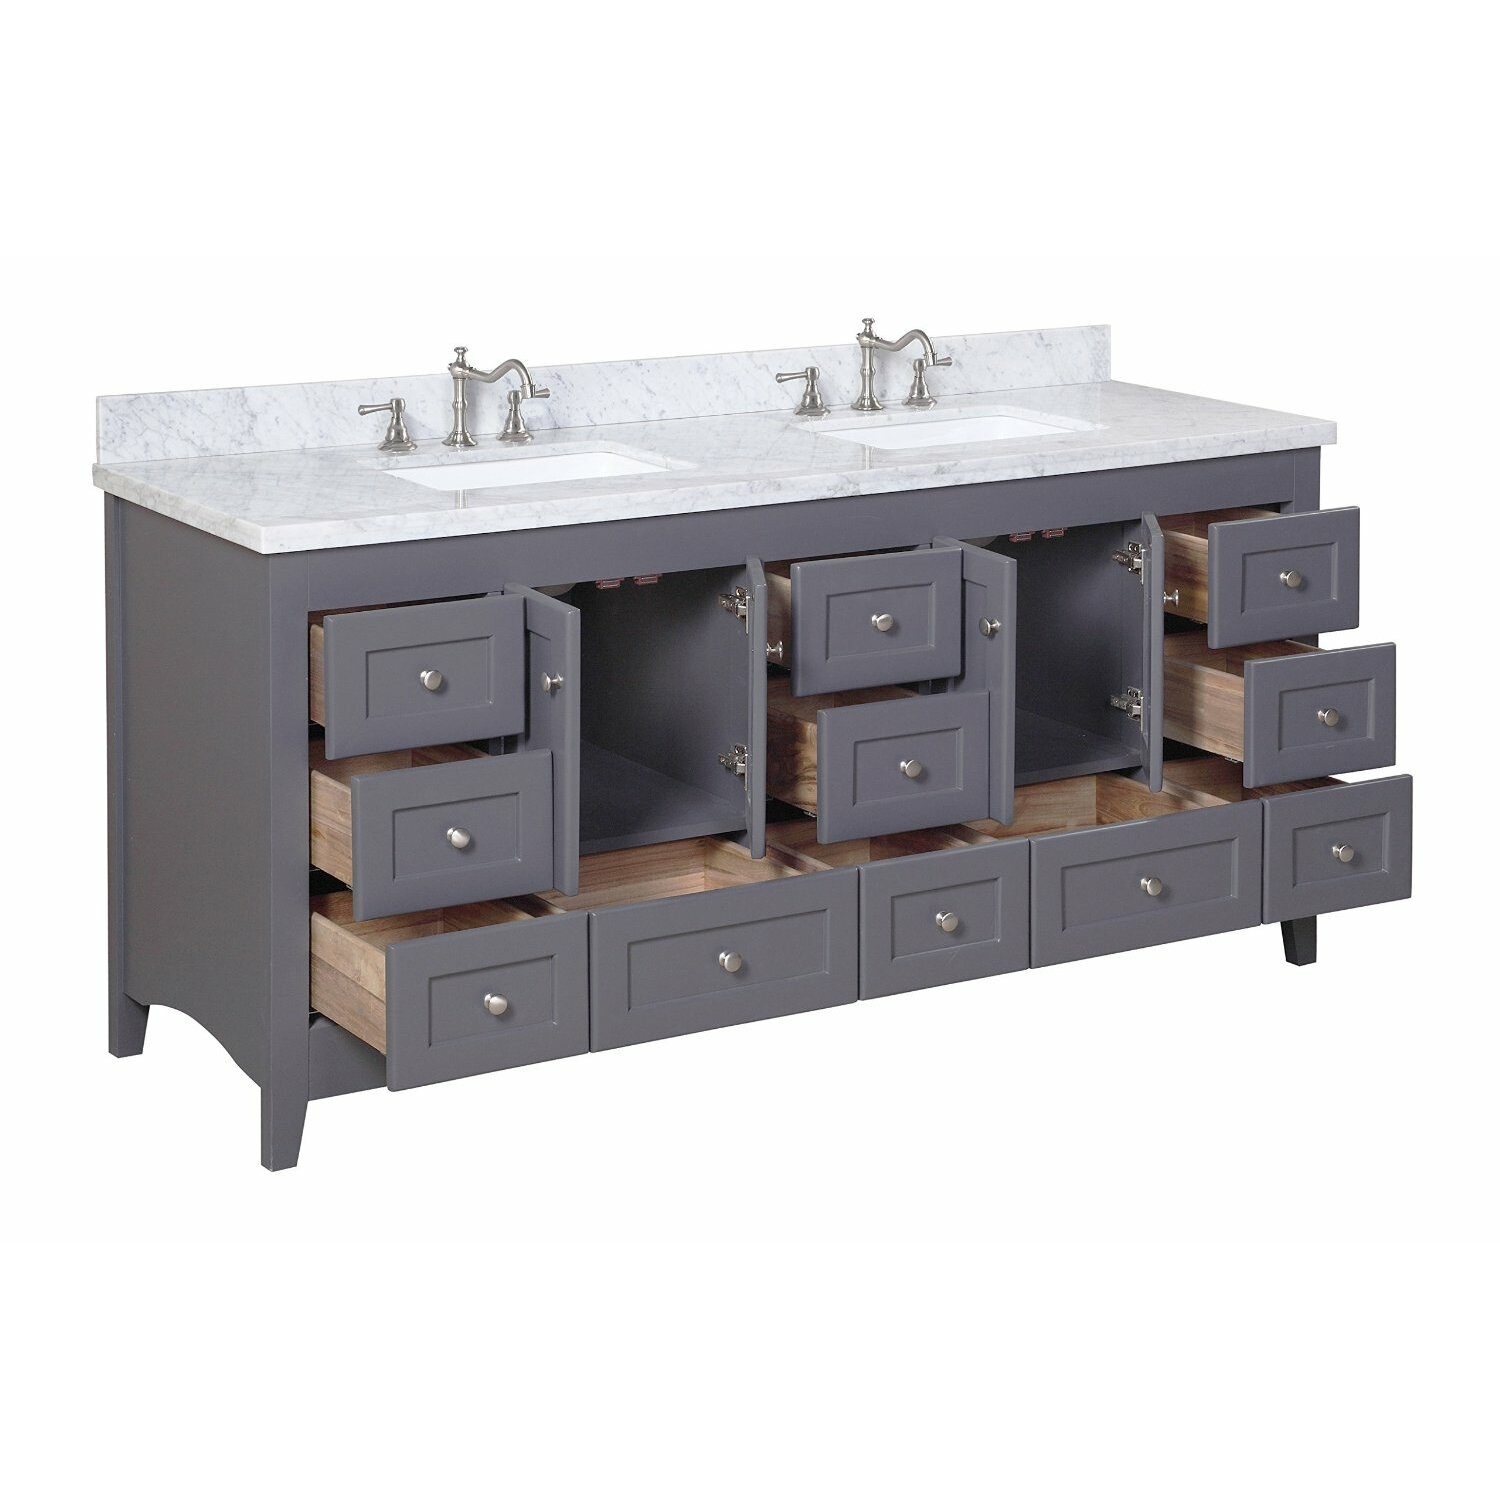 Kbc Abbey 72 Double Bathroom Vanity Set Reviews Wayfair